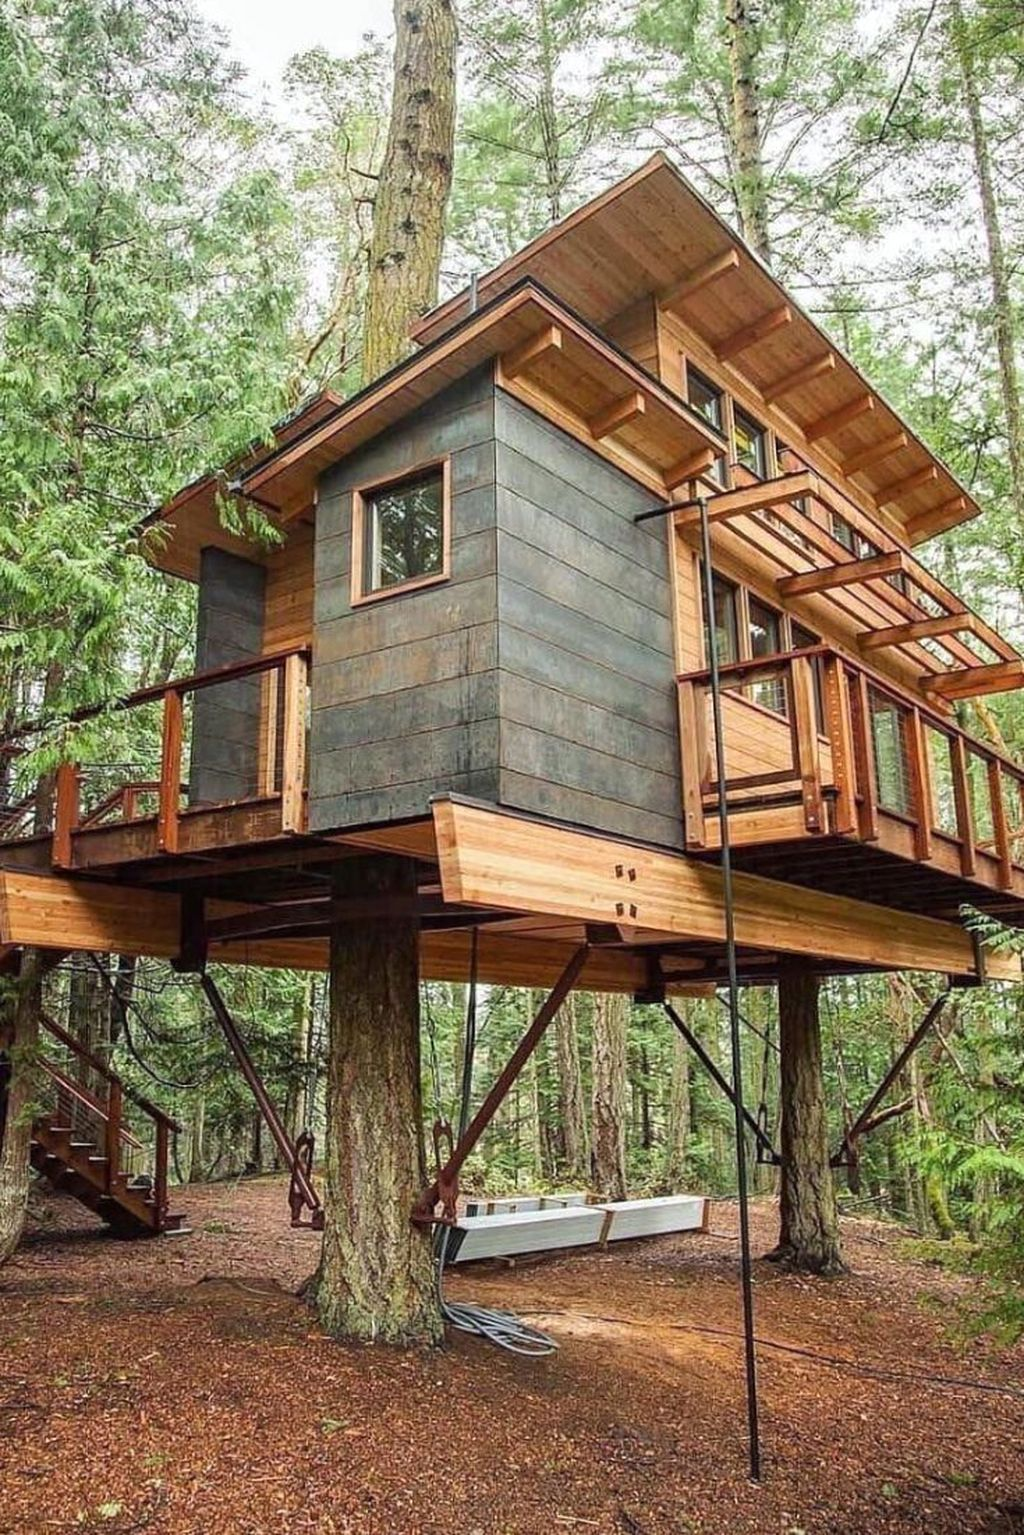 Stunning Tree House Designs You Never Seen Before 06